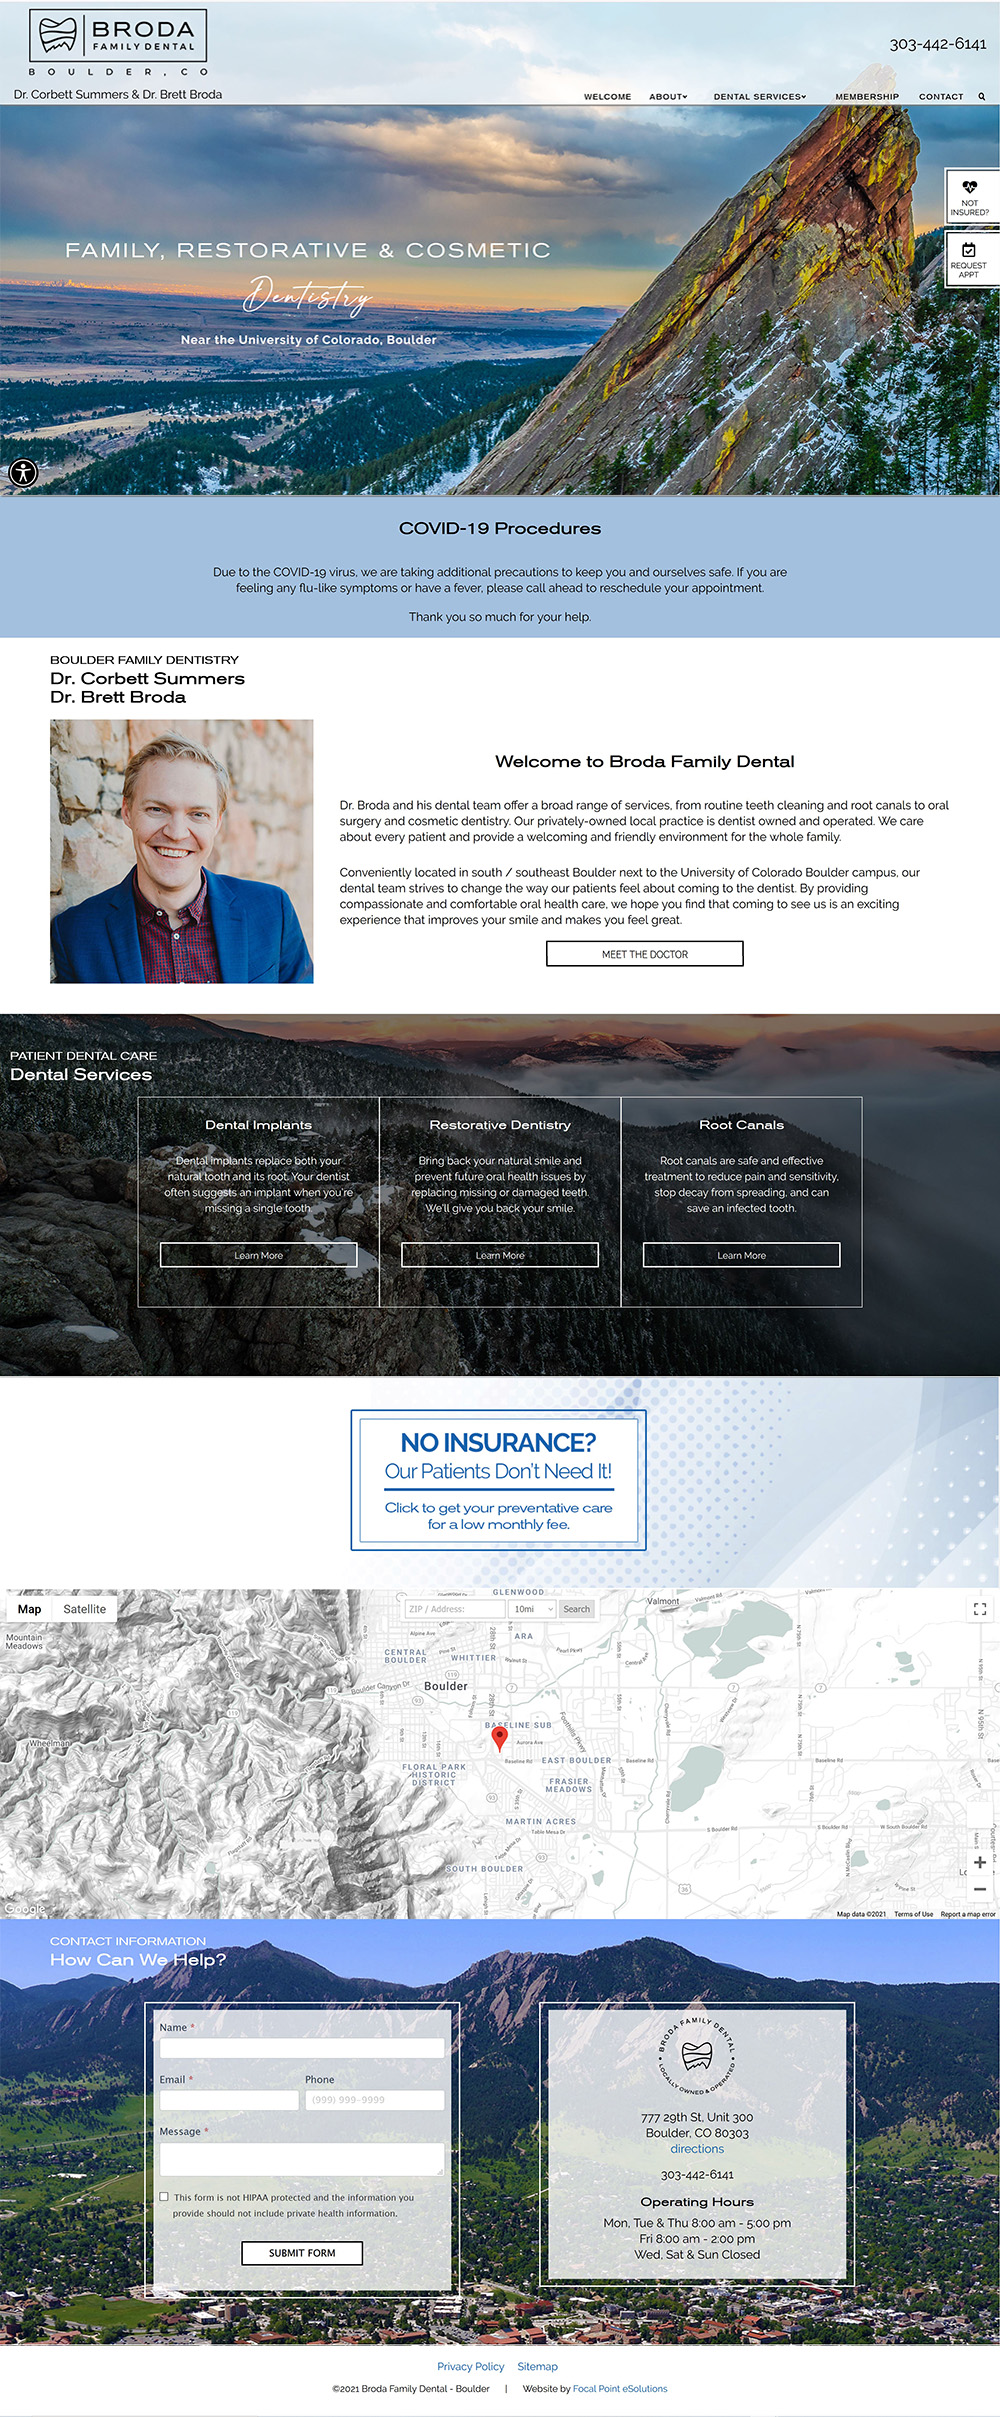 Website Launched for Broda Family Dental of Boulder CO - Brett Broda DDS